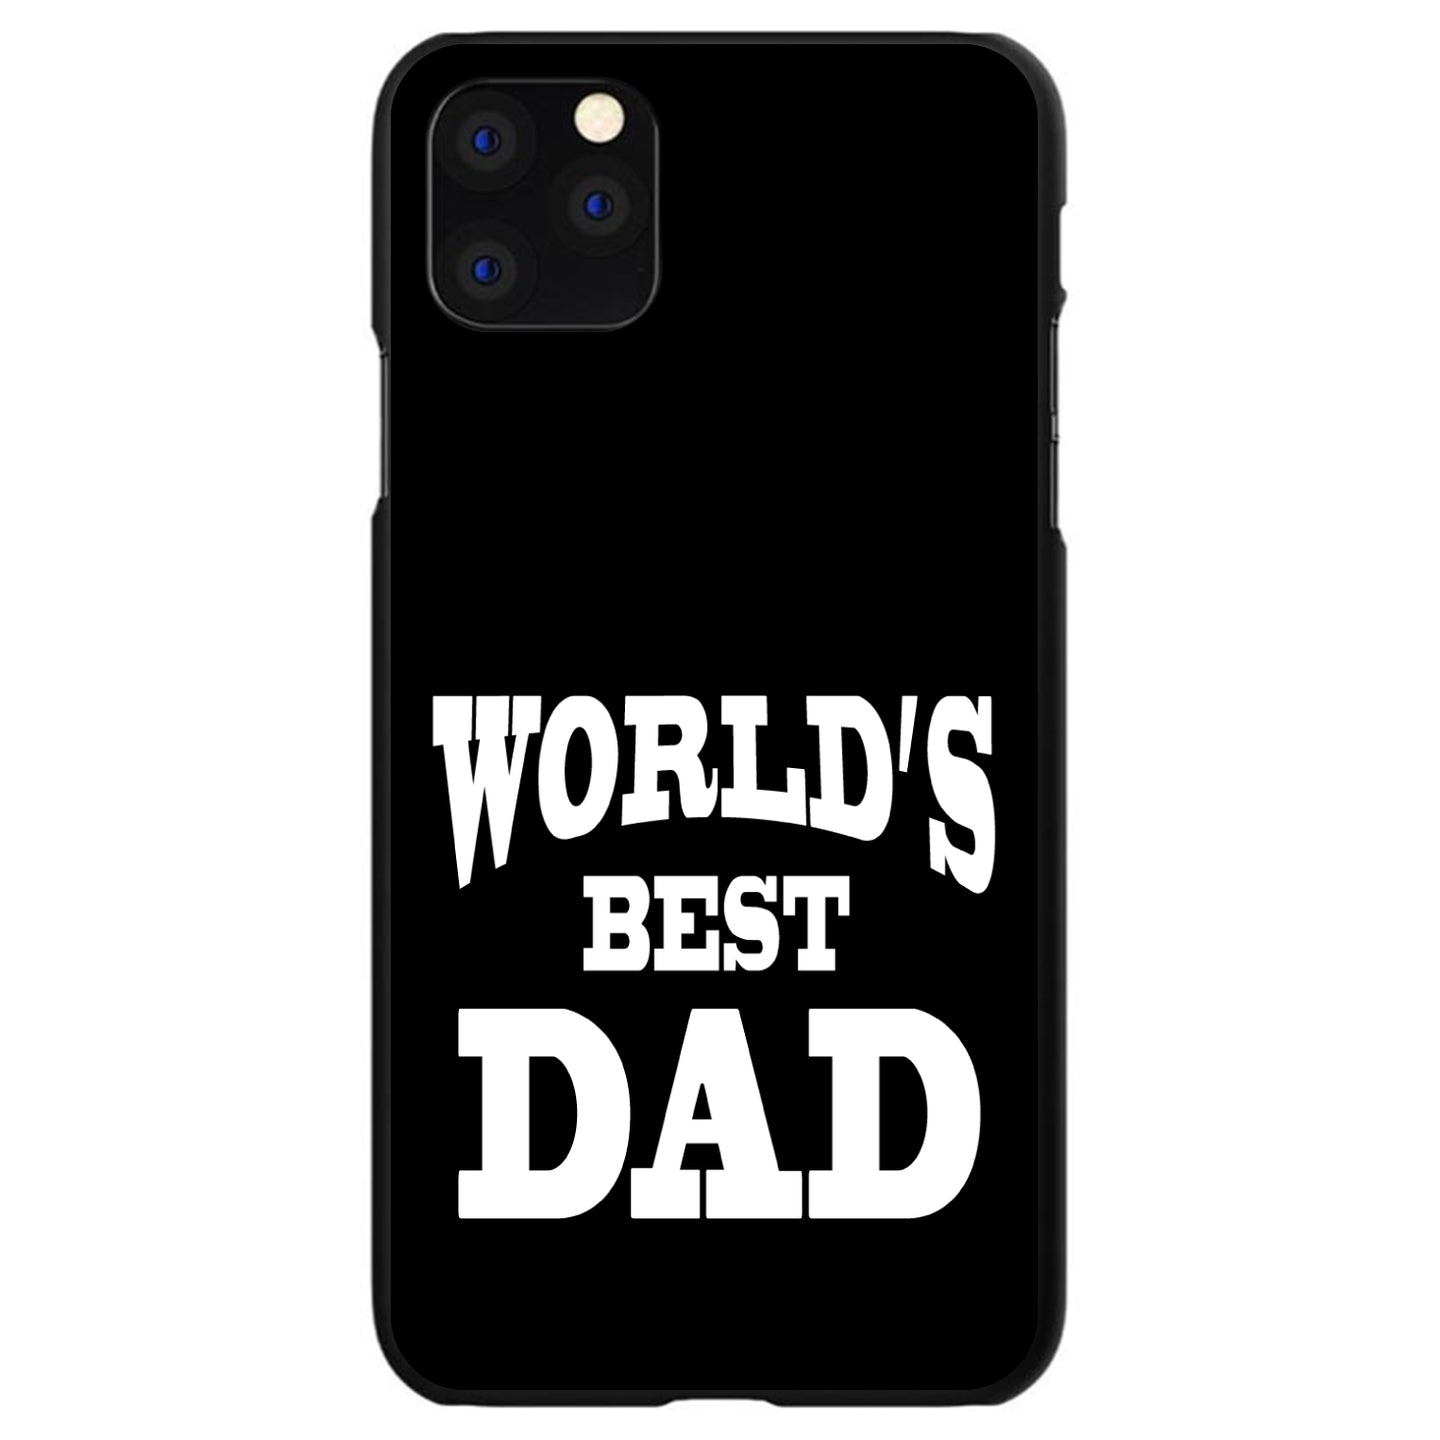 DistinctInk® Hard Plastic Snap-On Case for Apple iPhone - Black White Worlds Best Dad